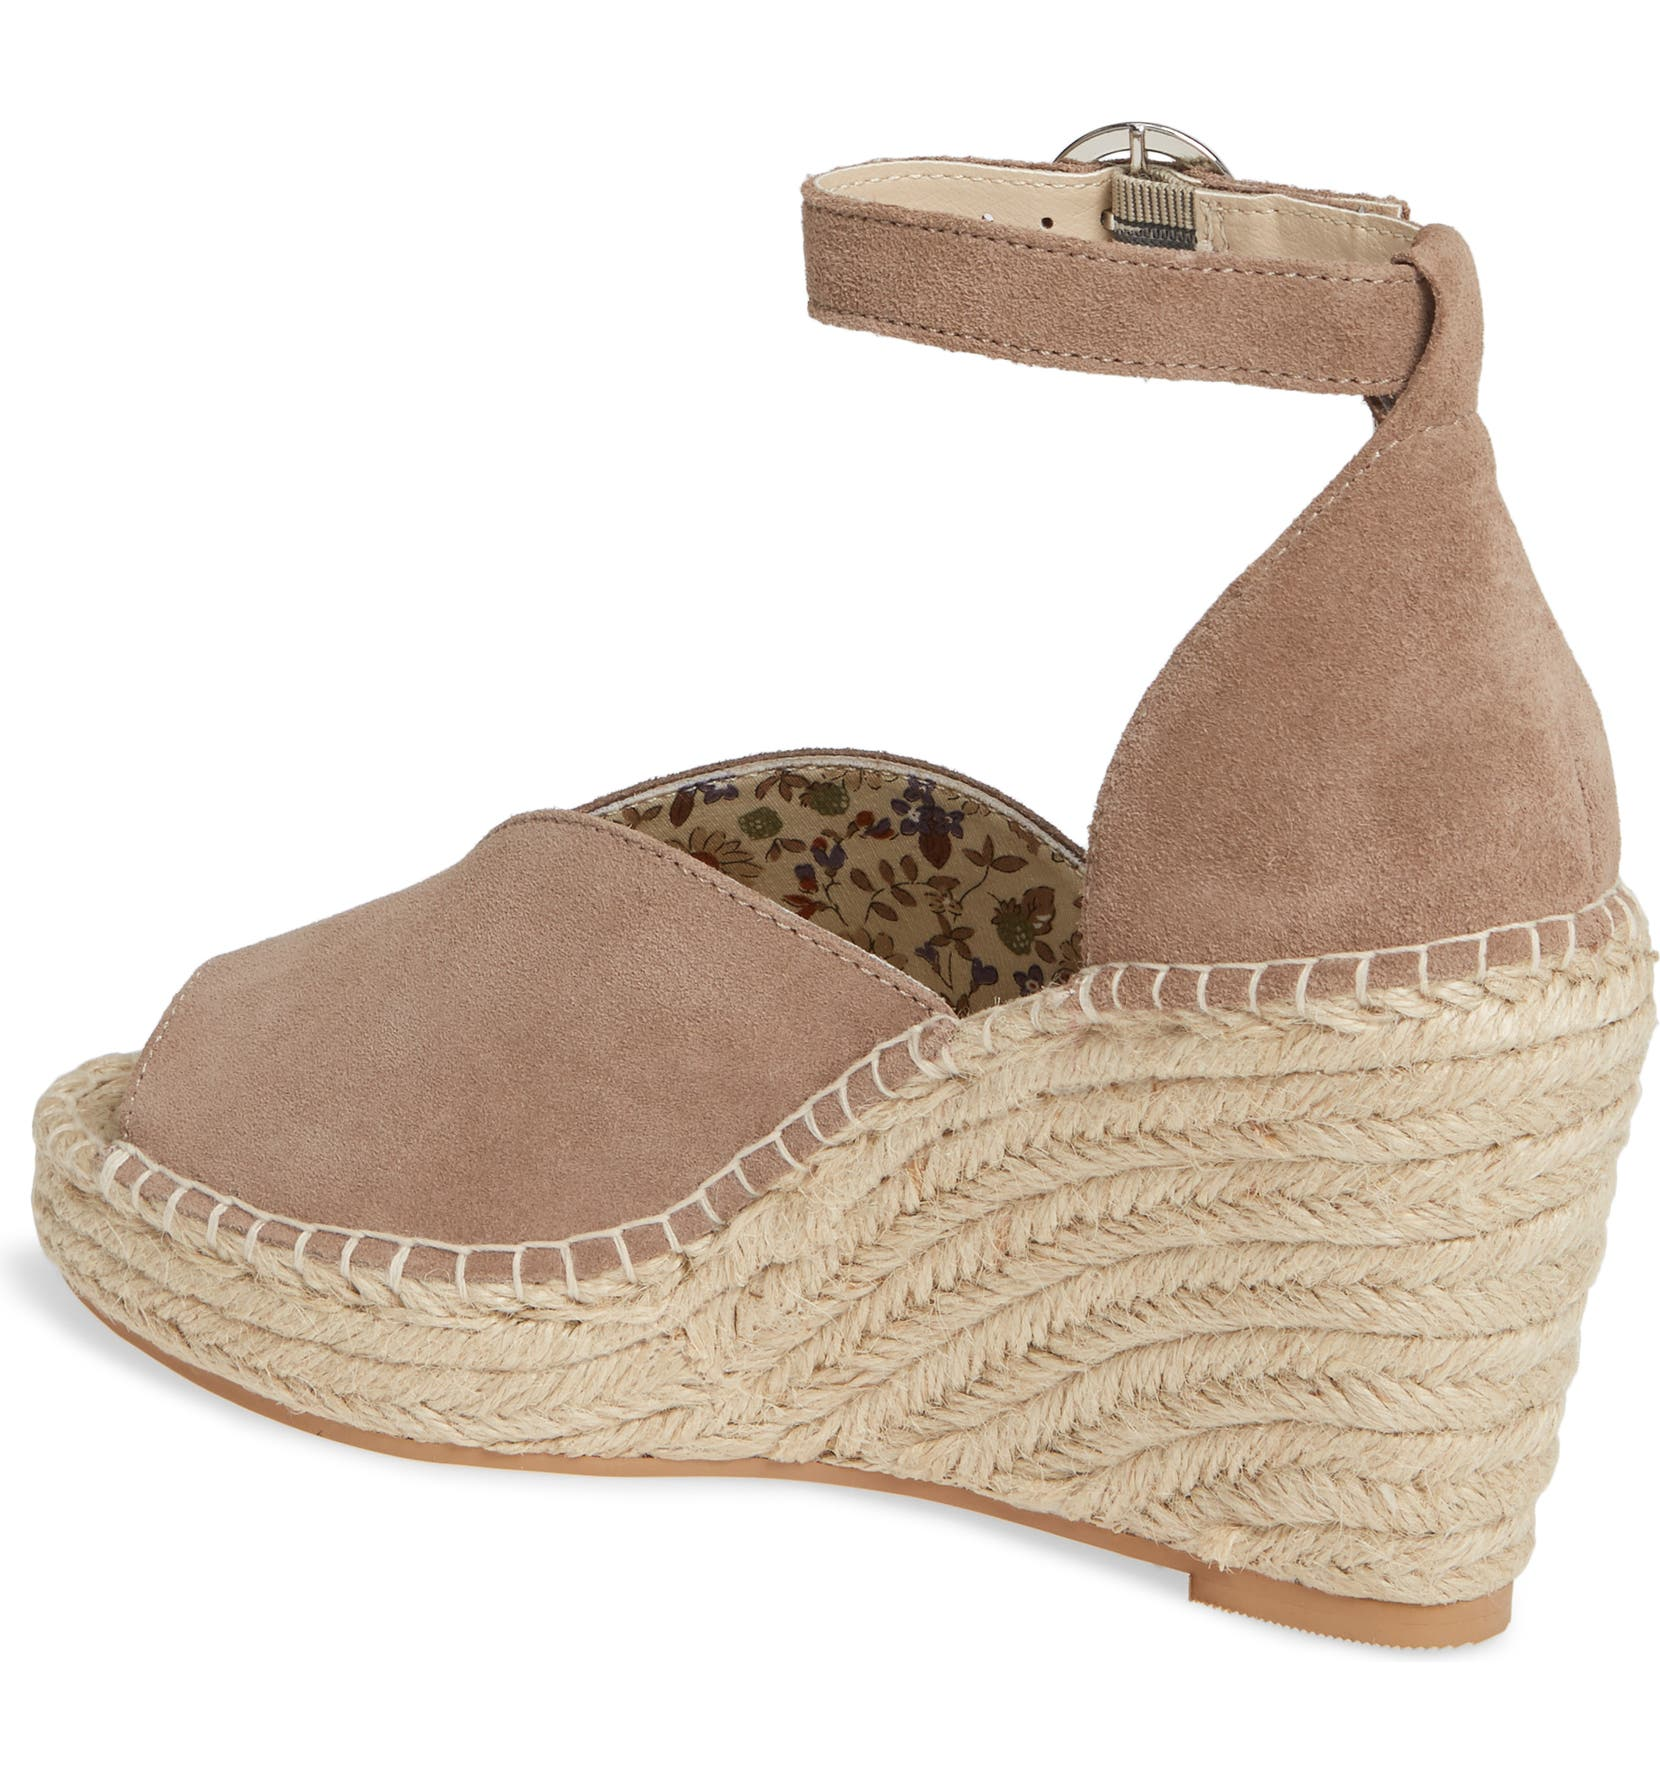 d4293f85f55 Collectibles Espadrille Wedge Sandal